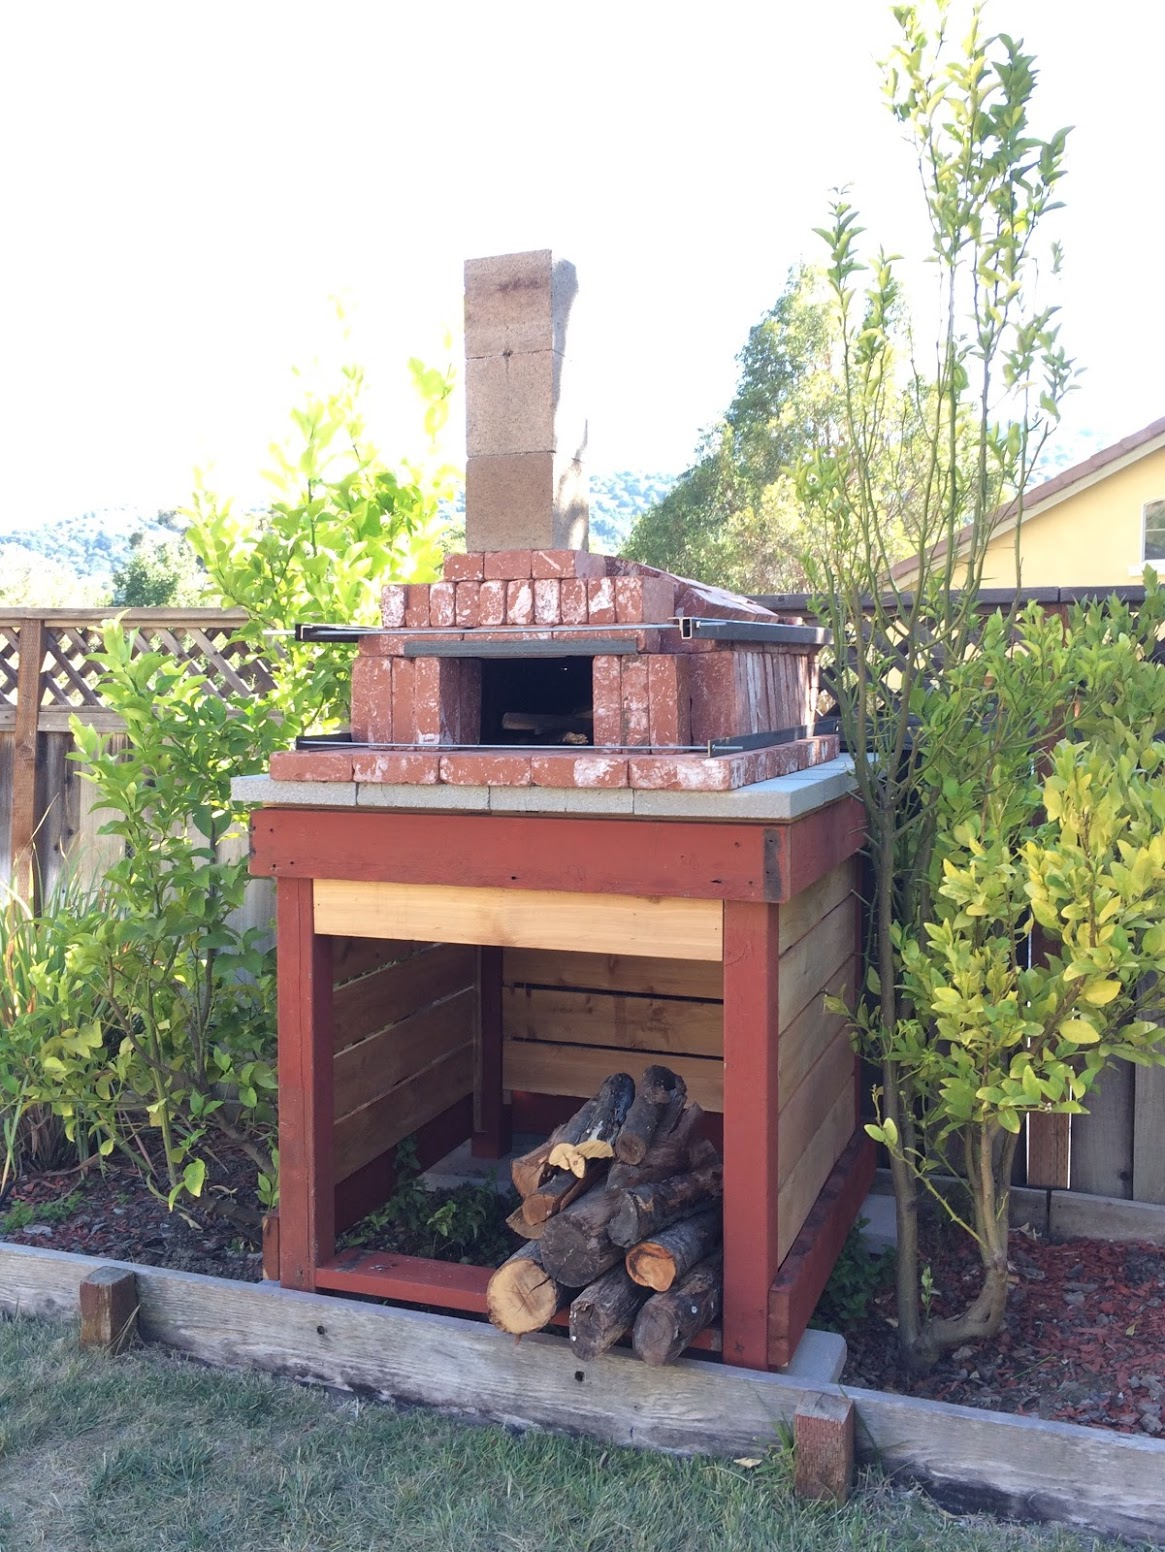 We're Giving Away a Brick Pizza Oven, and It Might be to You